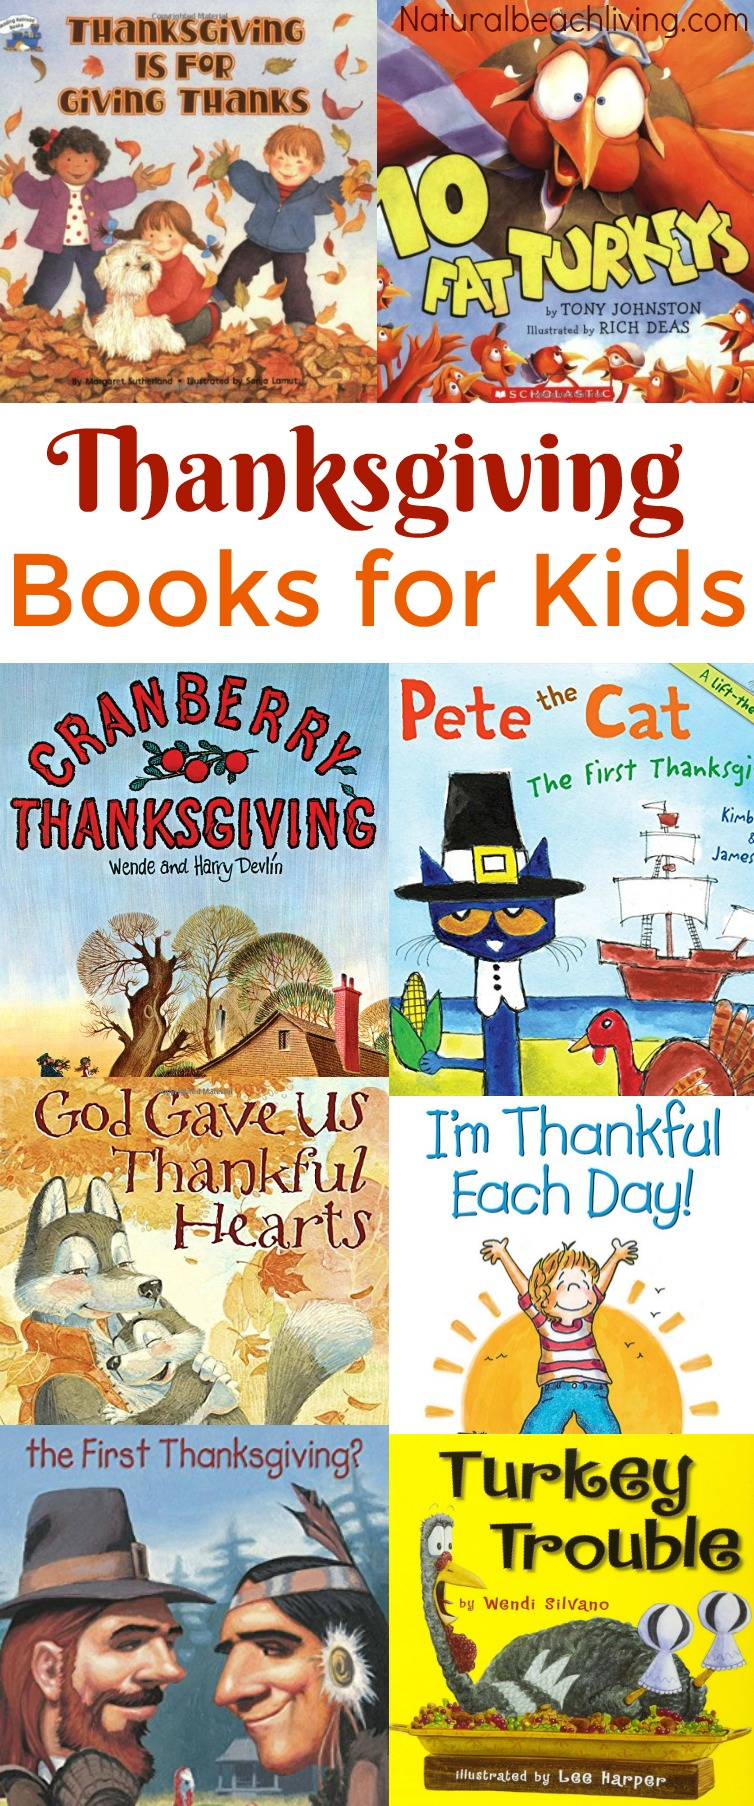 25+ Preschool Thanksgiving Activities and Thanksgiving Preschool Theme Ideas. Thanksgiving preschool activities for home and a classroom, Turkey Crafts, Thankful crafts, Thanksgiving Printables, Thanksgiving Books and More.